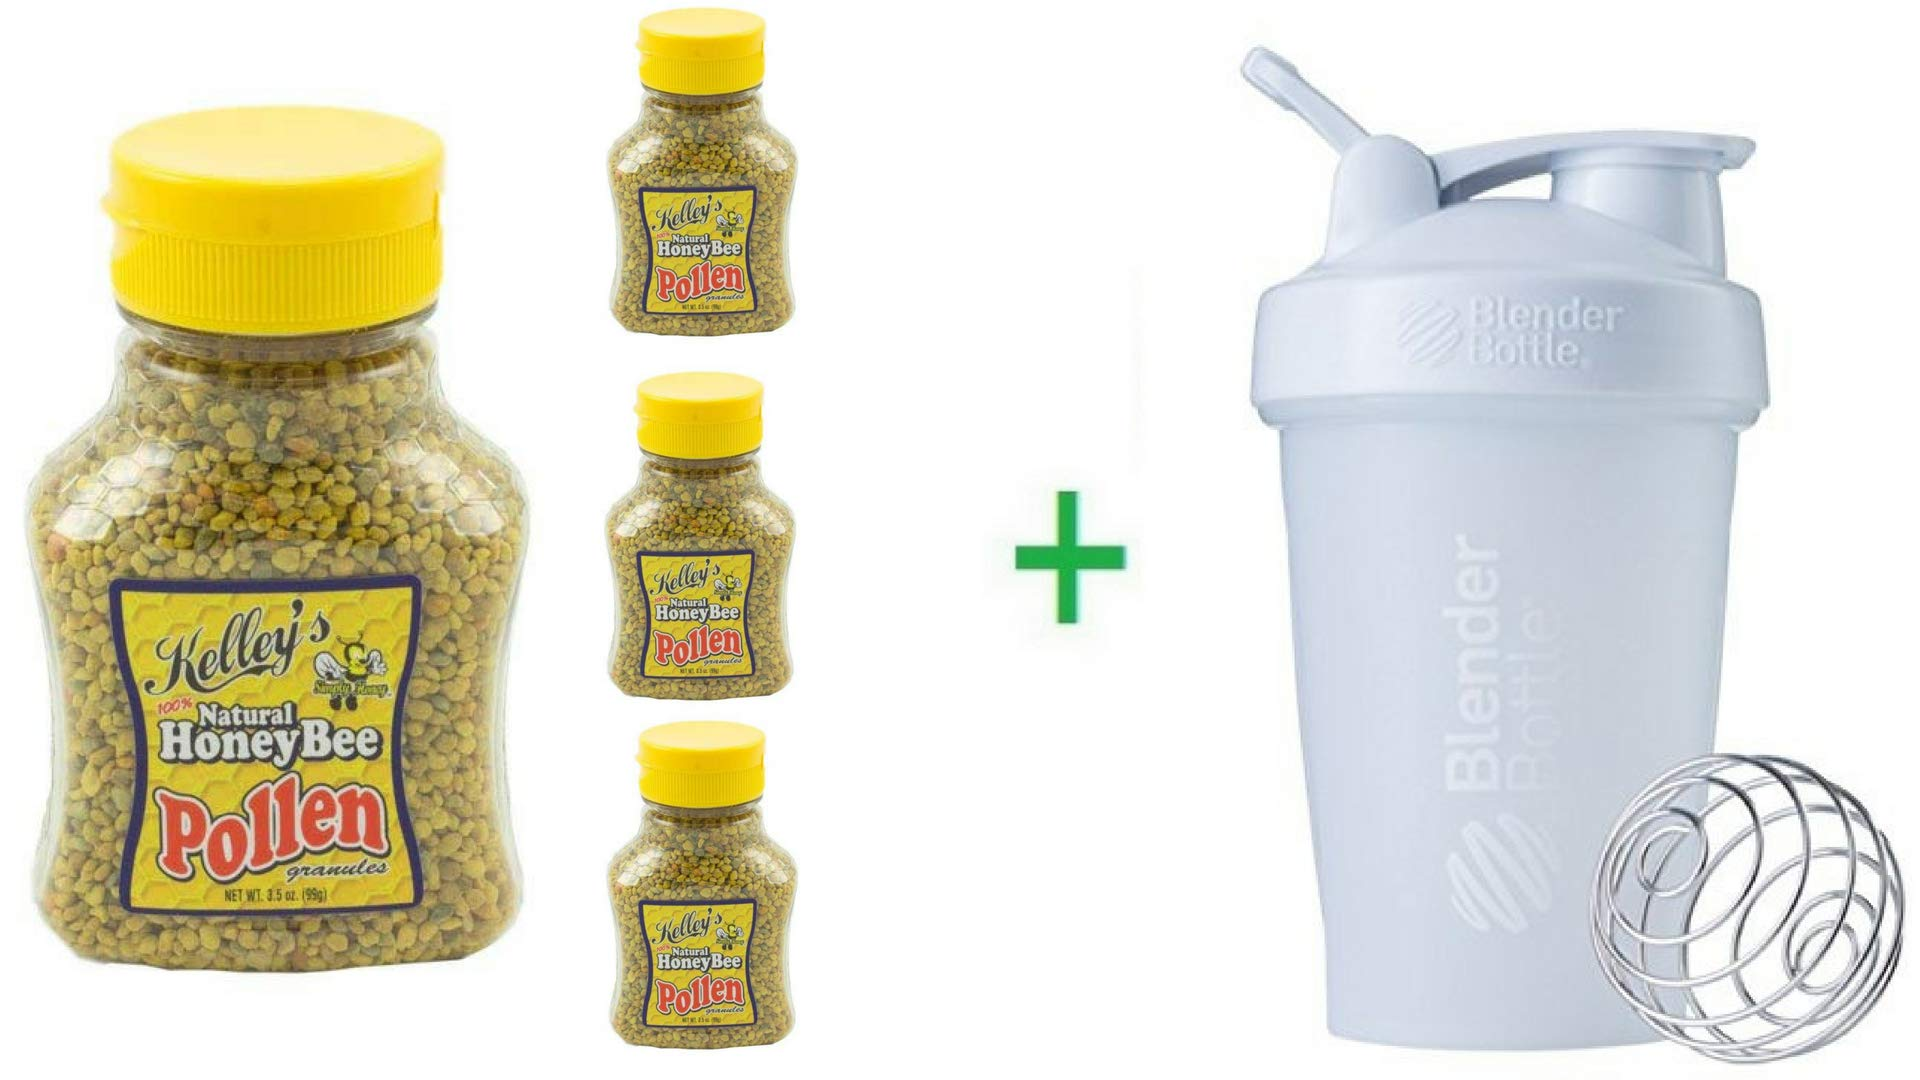 Kelley's Honey 100% Natural Bee Pollen 3.5 OZ (Pack of 4) + (Blender Bottle)